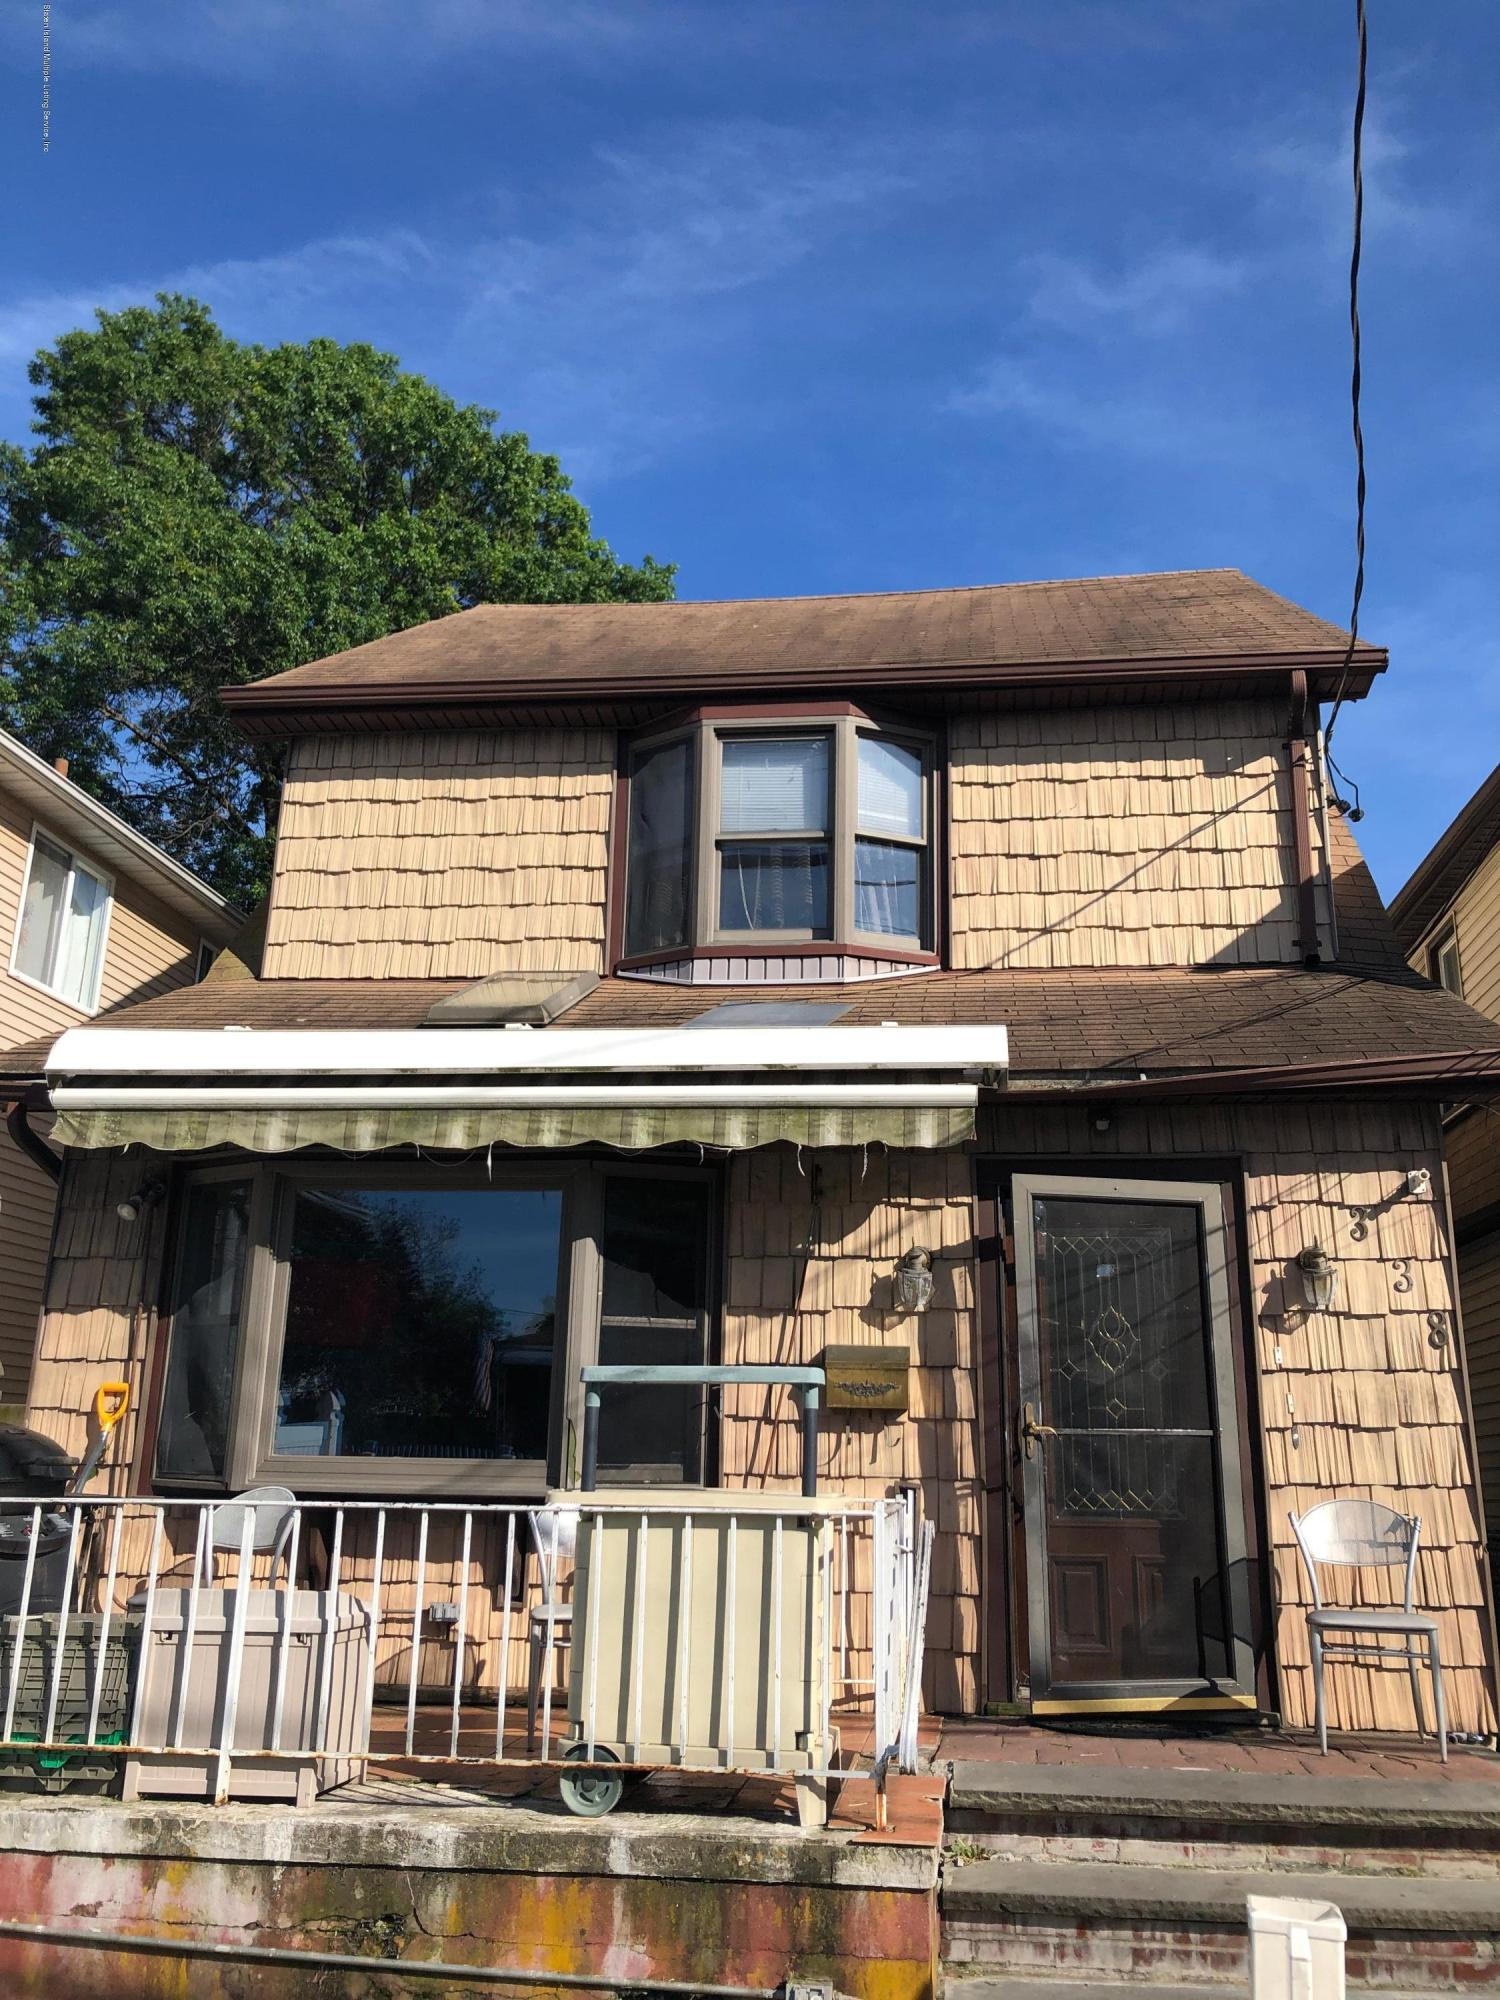 338 Clifton Avenue,Staten Island,New York,10305,United States,4 Bedrooms Bedrooms,6 Rooms Rooms,2 BathroomsBathrooms,Residential,Clifton,1130574